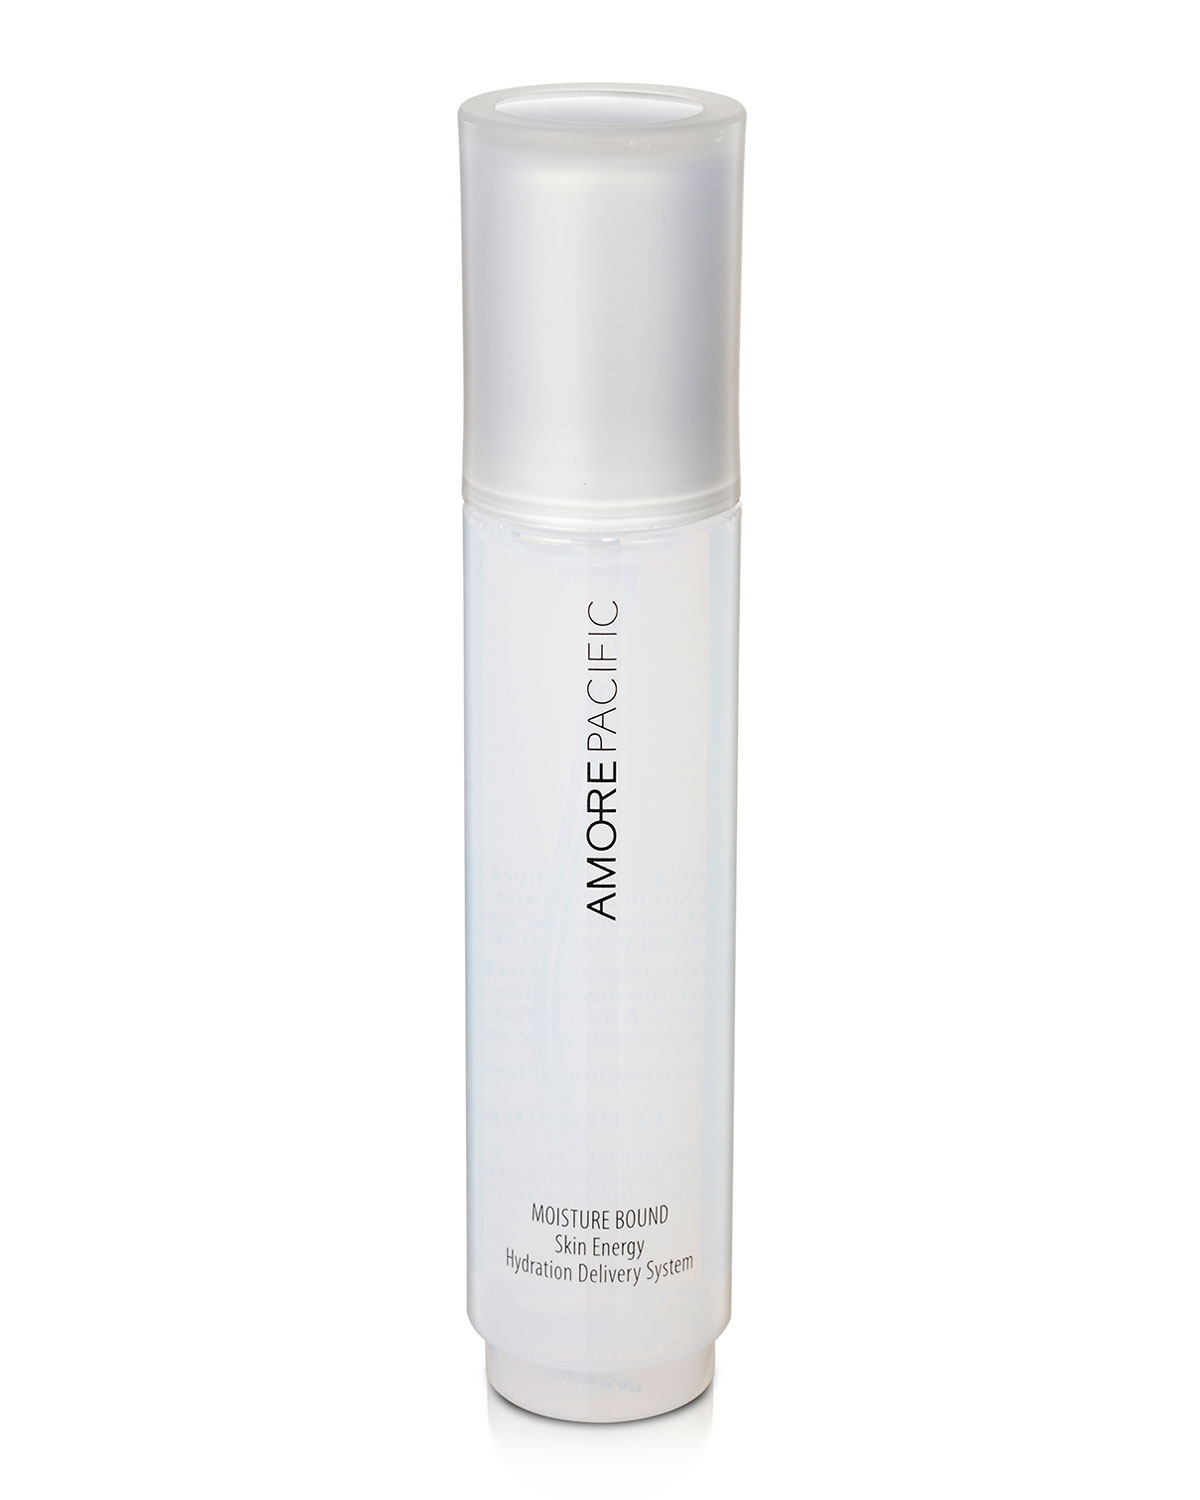 2.7 oz. MOISTURE BOUND Skin Energy Hydration Delivery System